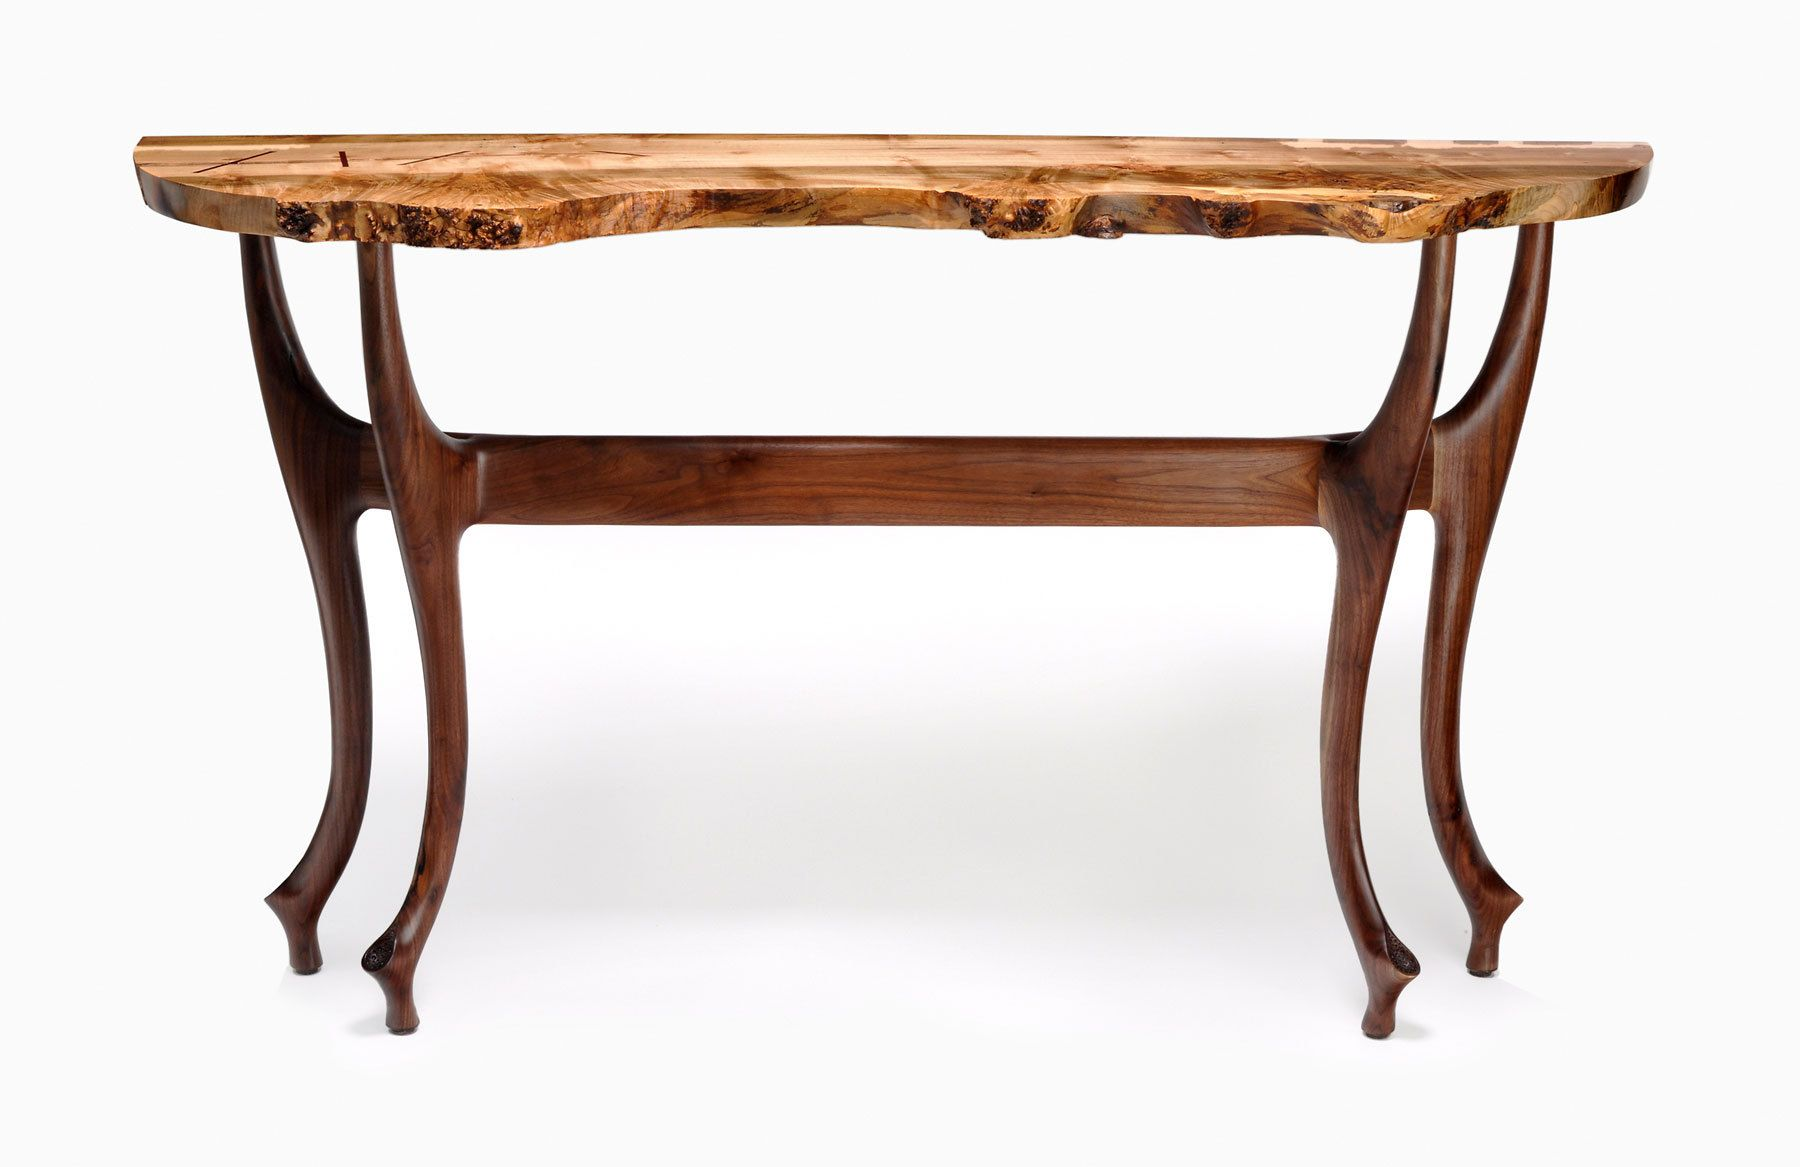 Pogonia table